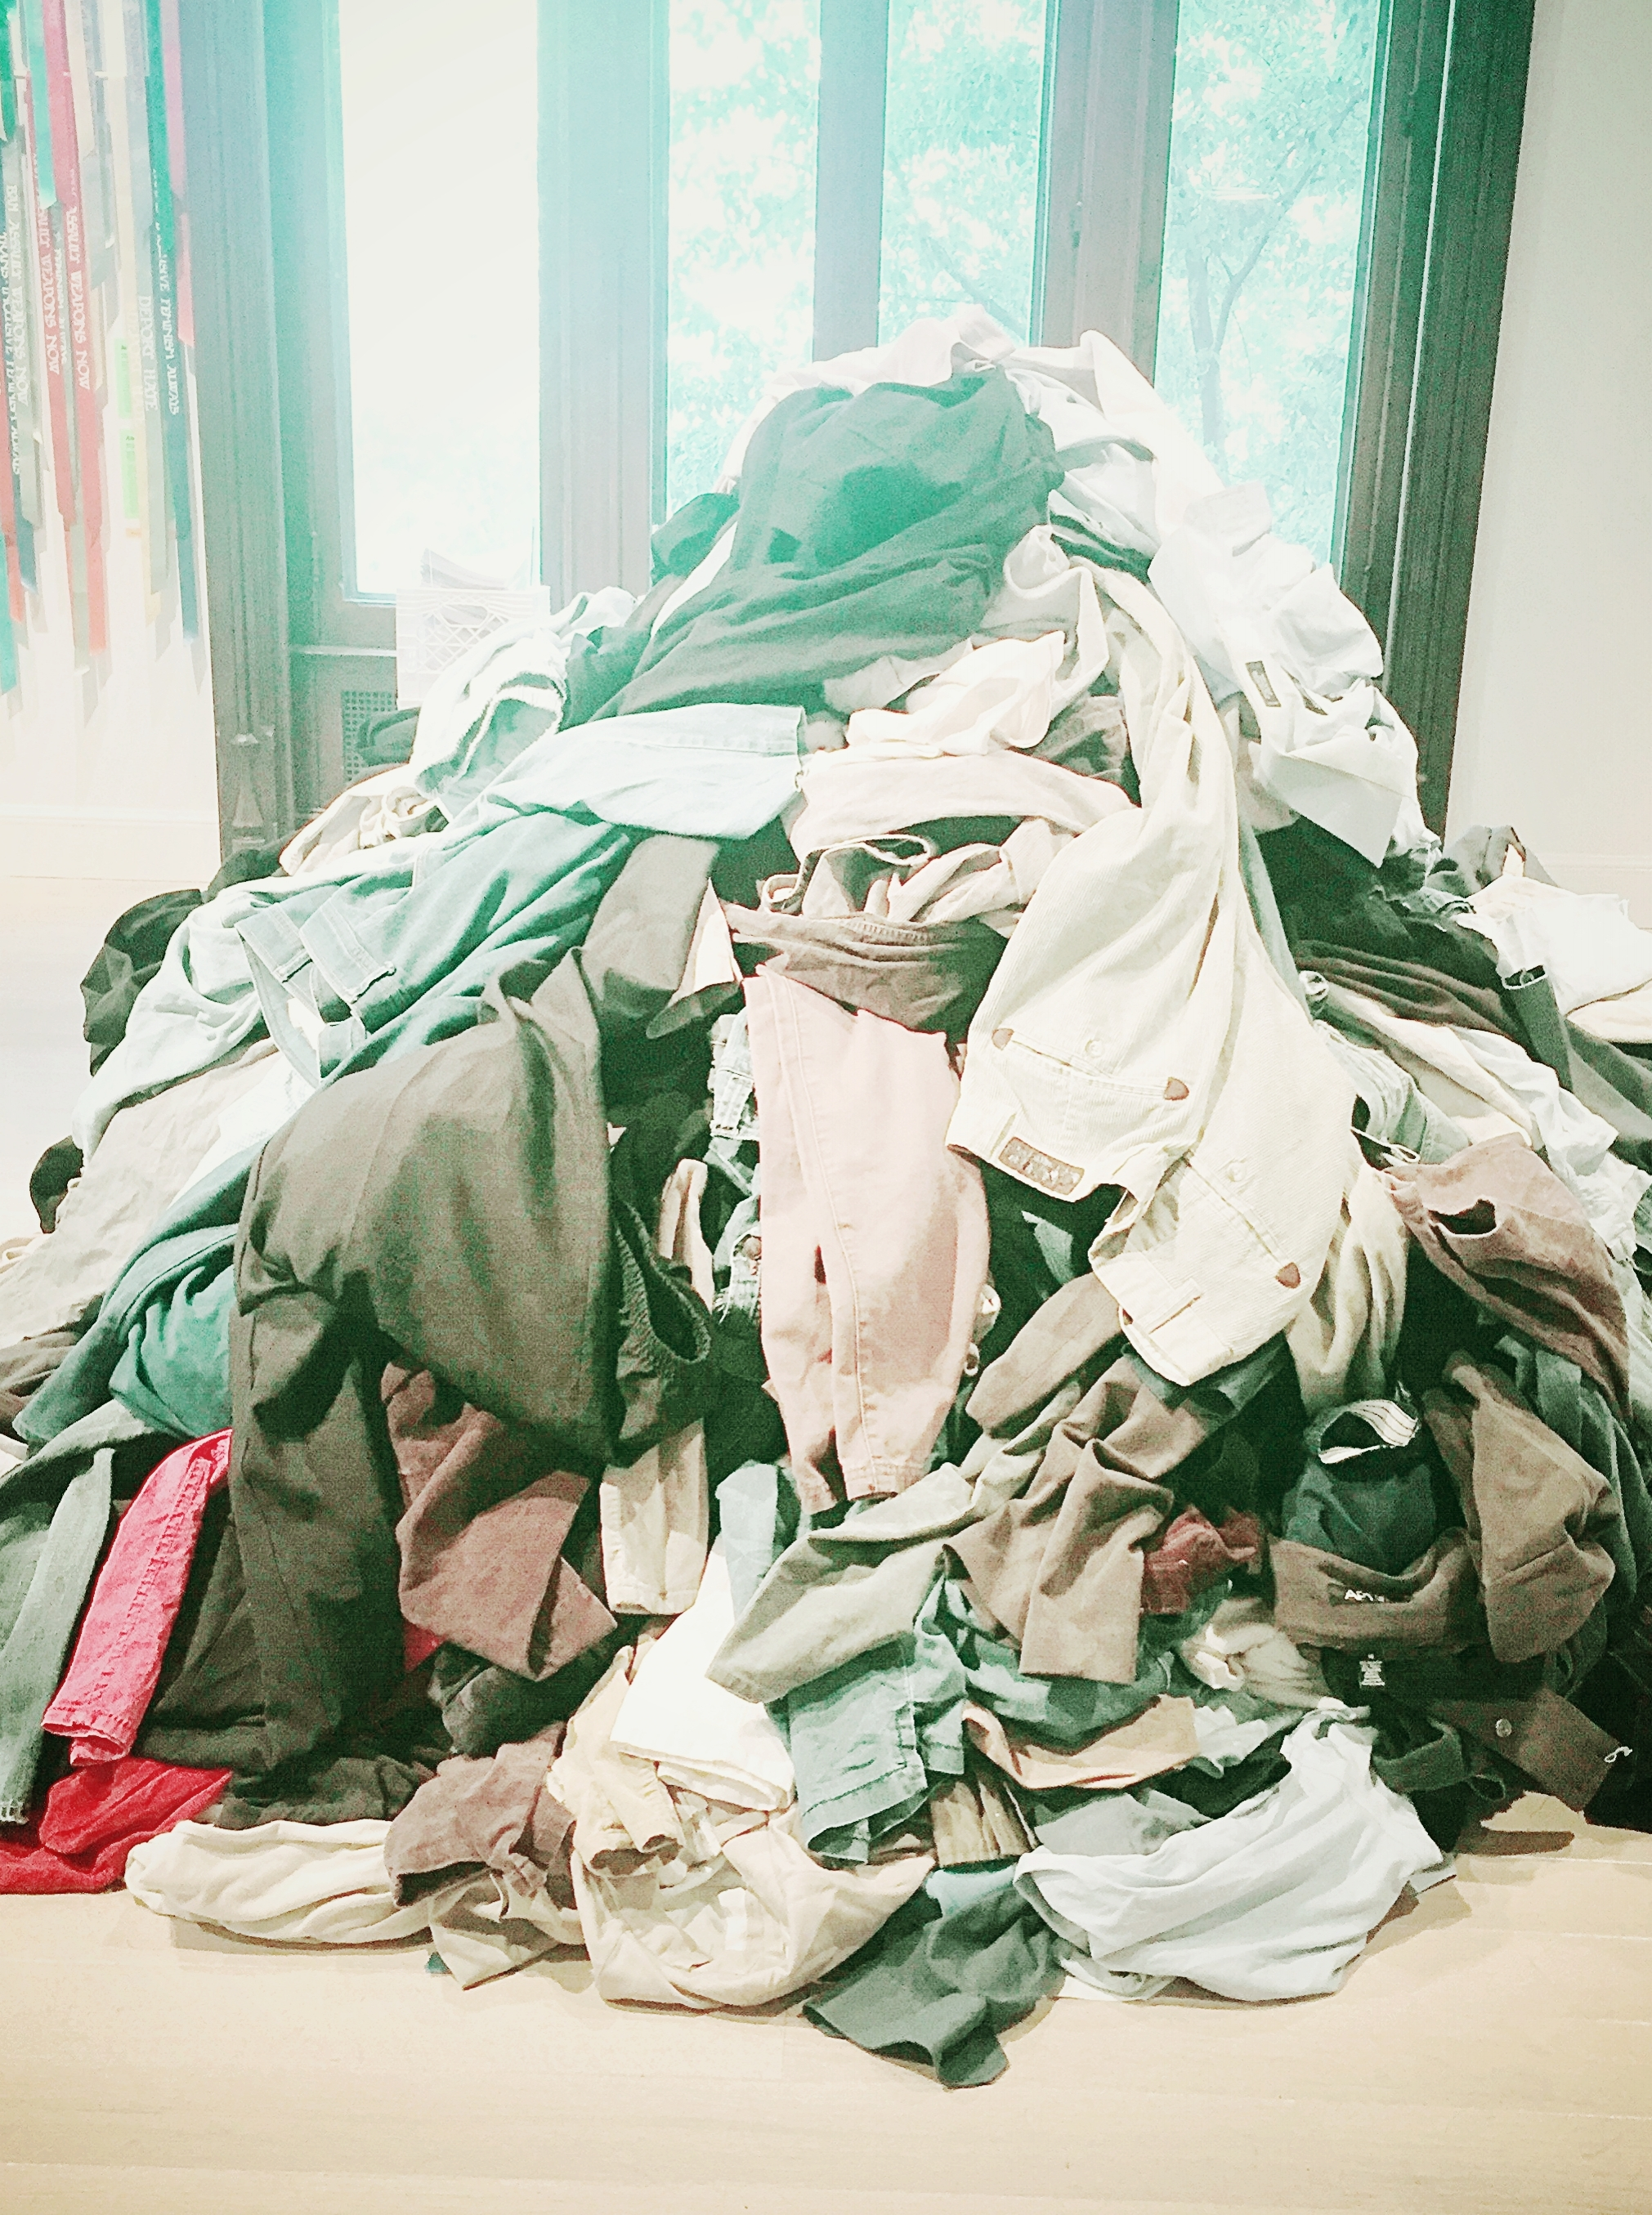 """The KonMari """"pile""""   By gathering clothing into one pile, before sorting, the sheer amount is impressive and informs decisions. This technique clears the closets, and other storage areas, so you get a fresh start at creating your ideal."""